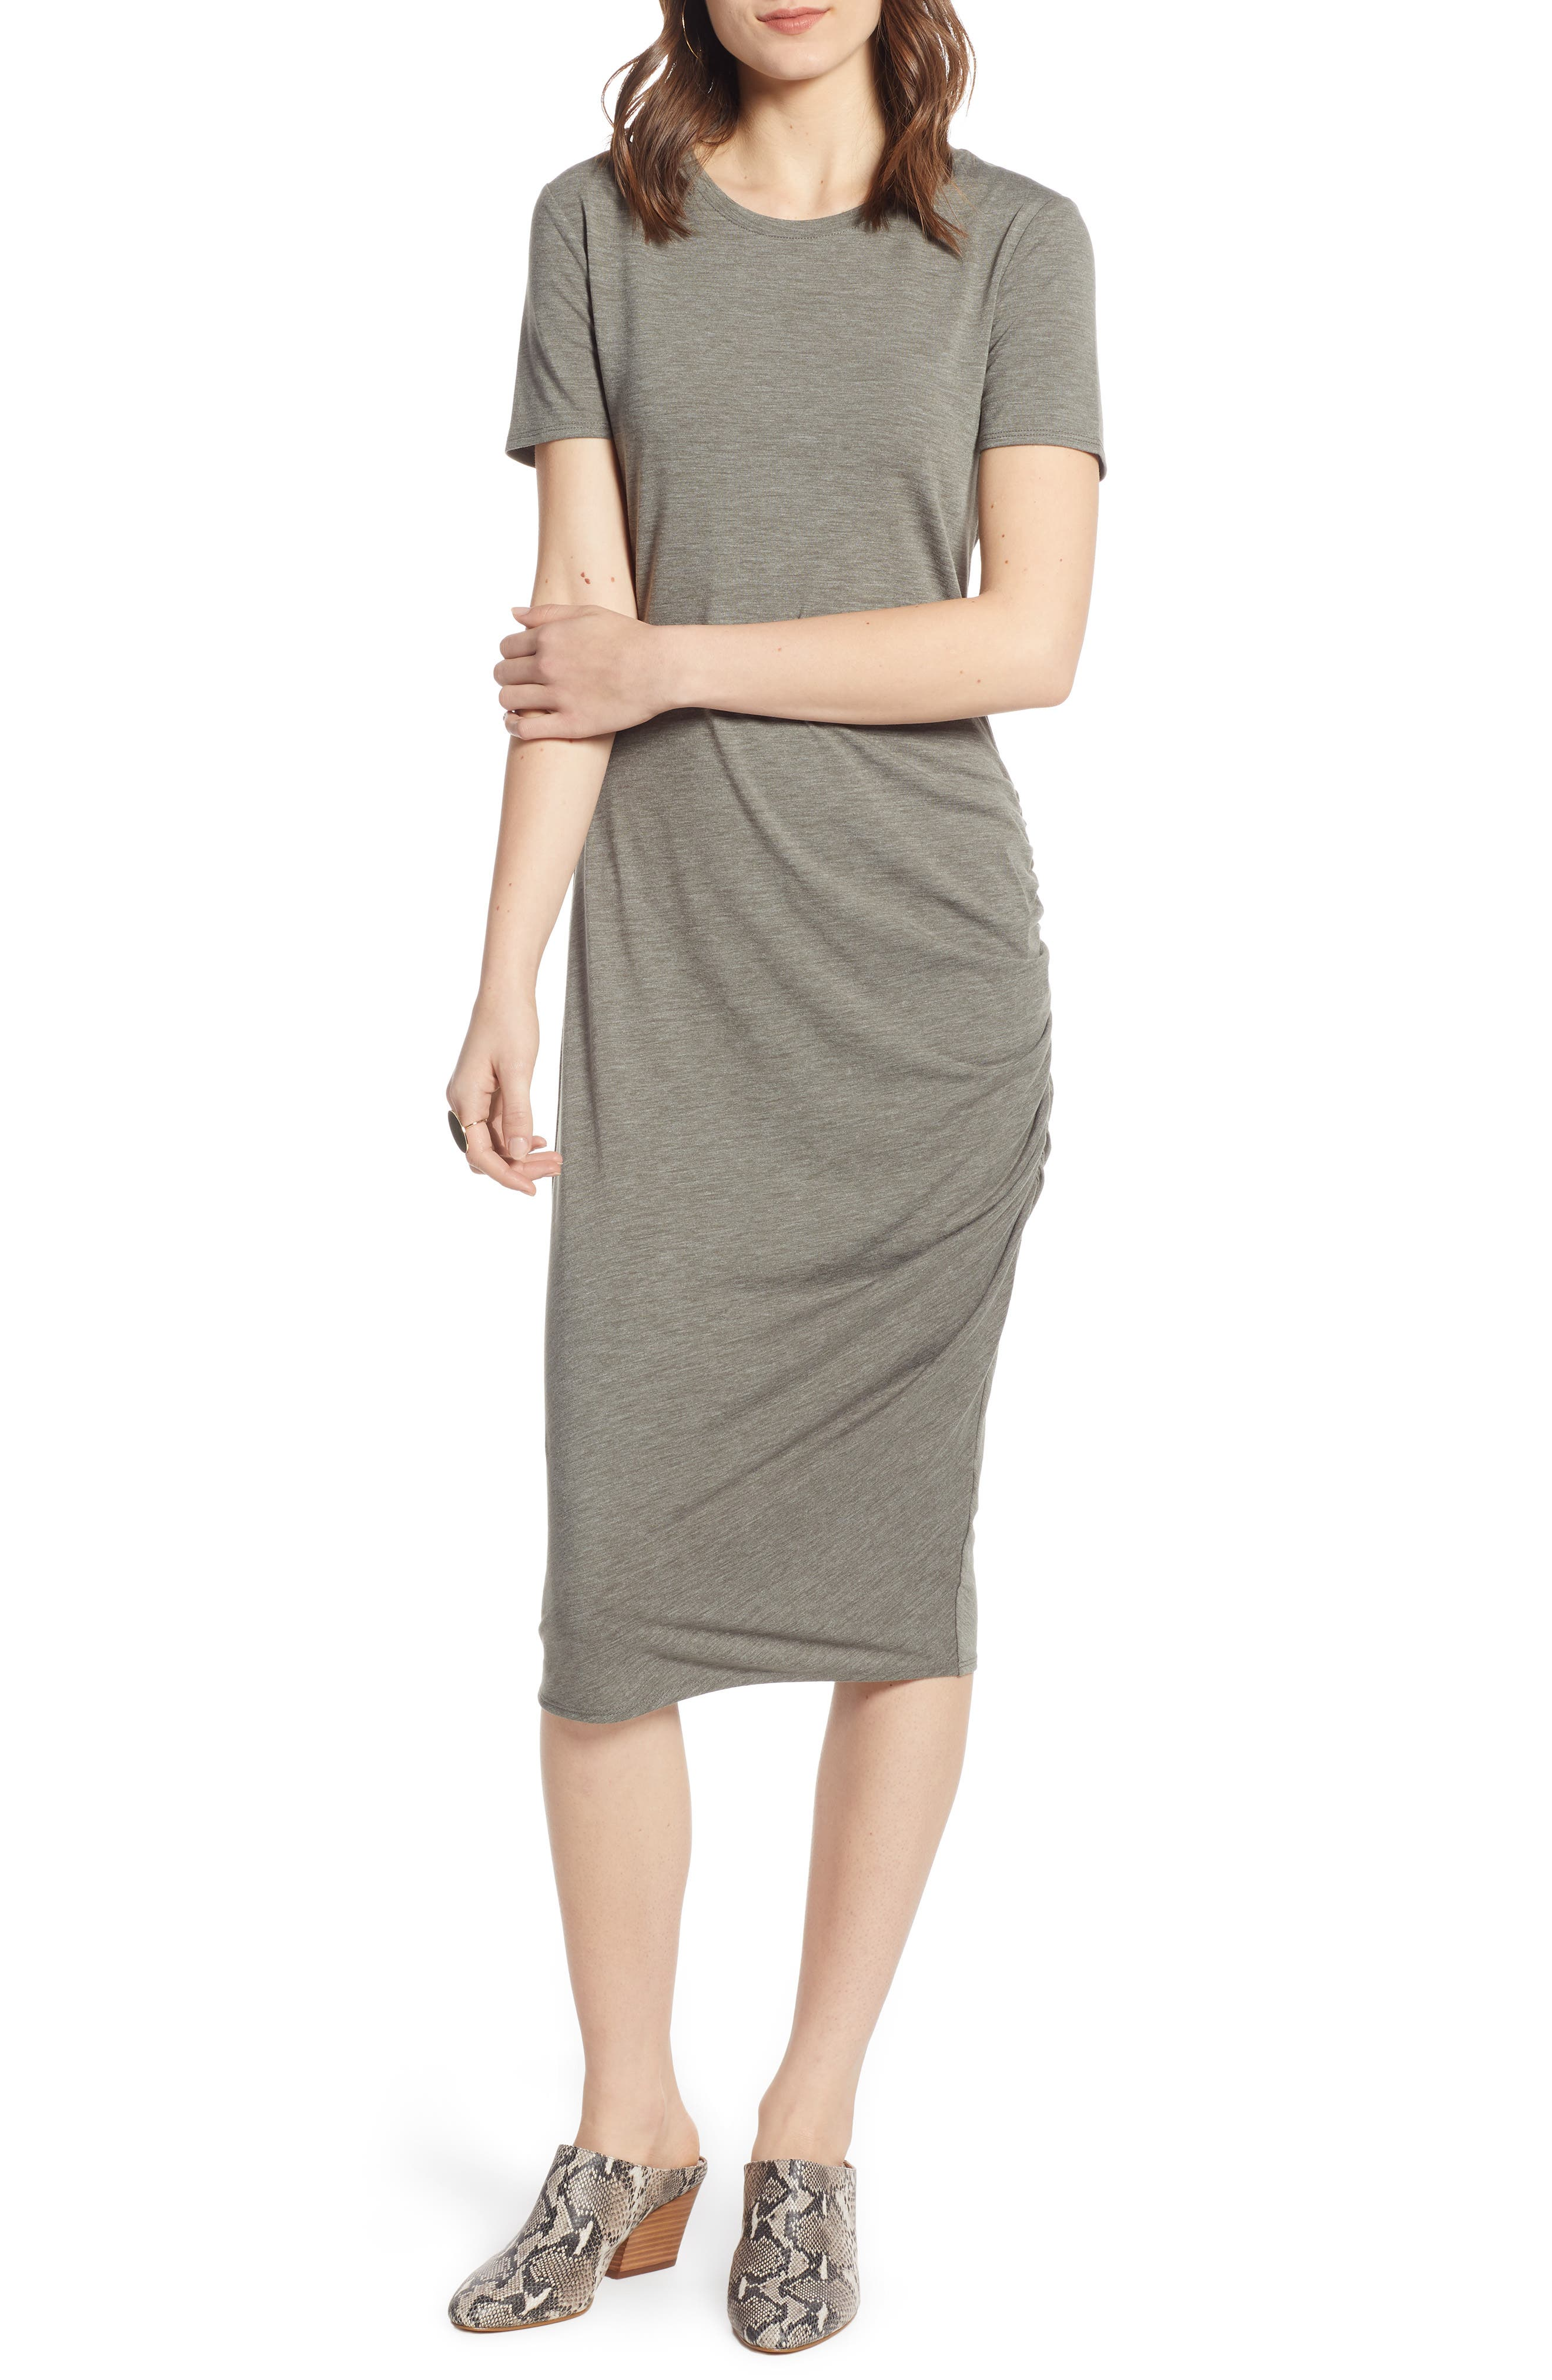 TREASURE & BOND, Side Ruched Body-Con Dress, Alternate thumbnail 6, color, OLIVE SARMA HEATHER